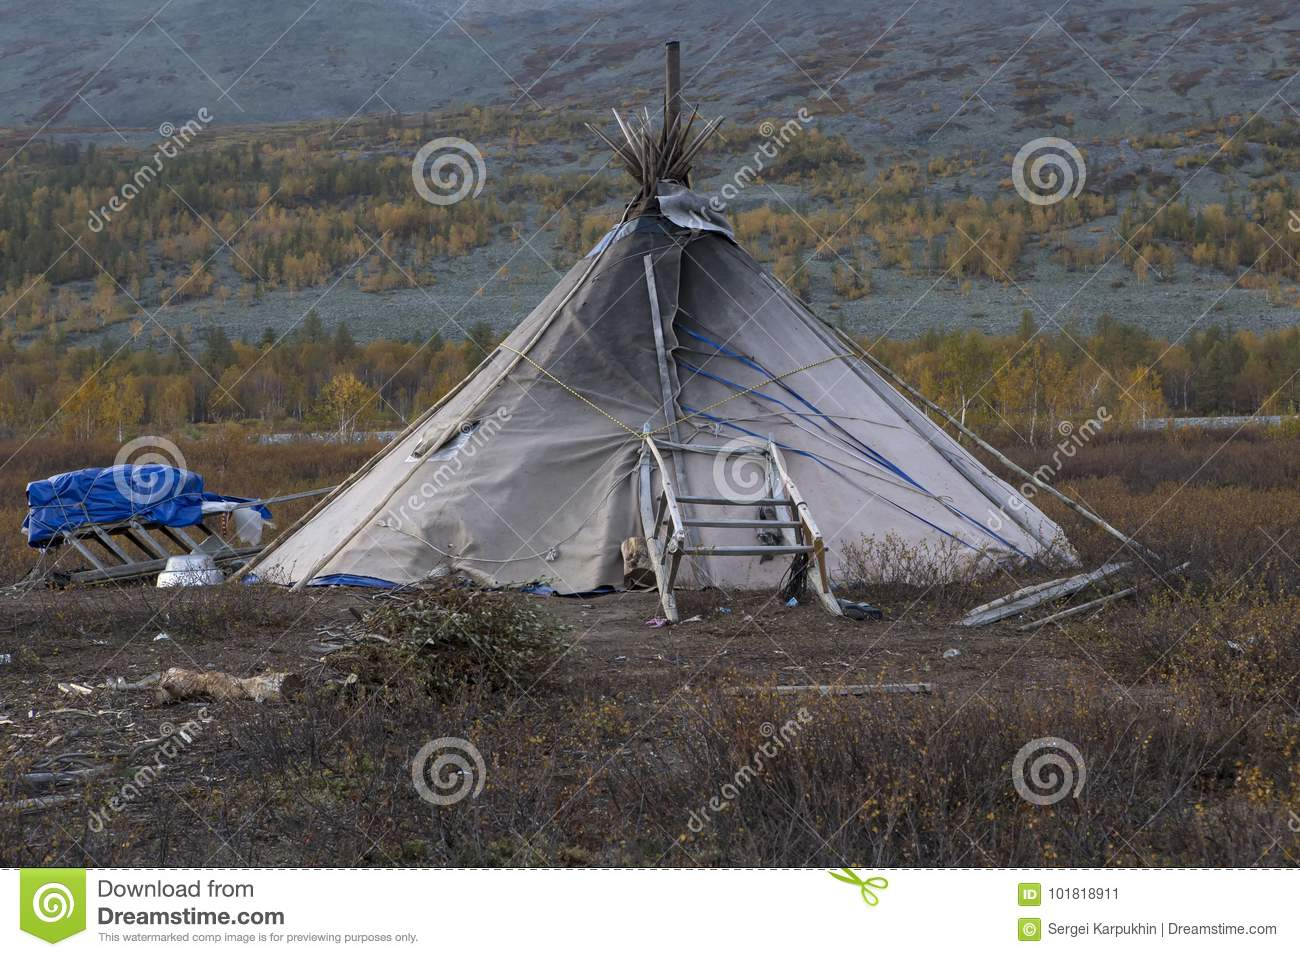 The lone tent of reindeer with sleds.